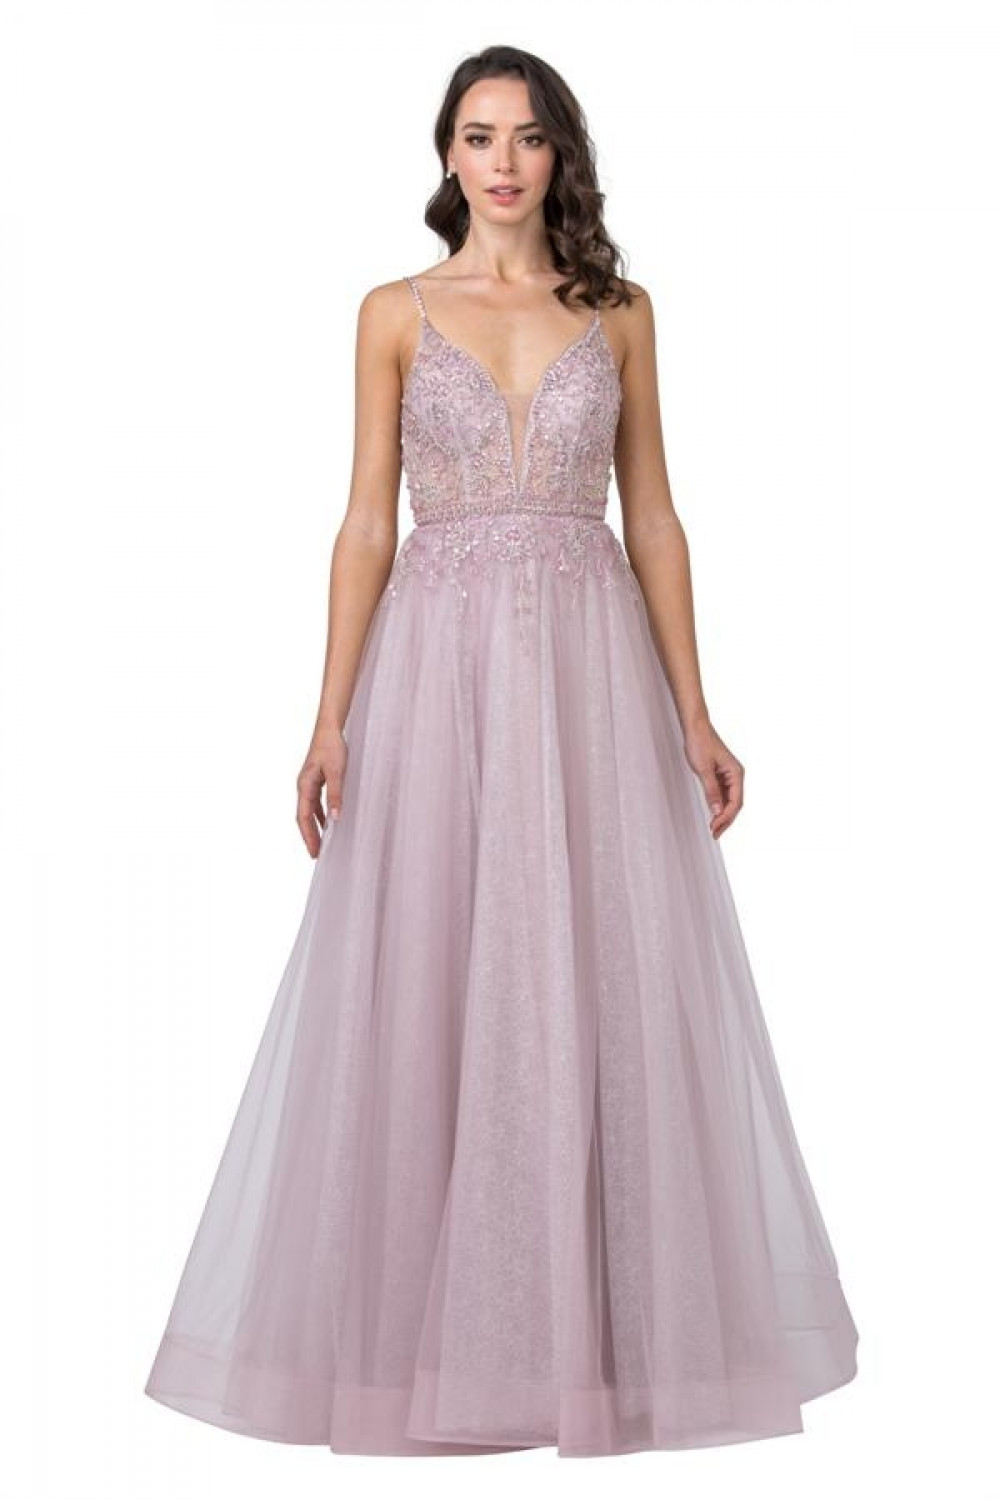 Aspeed Size Chart A AS 2431 - Glitter A-Line Prom Gown with Embellished V-Neck Bodice & Spaghetti Straps - Diggz Prom